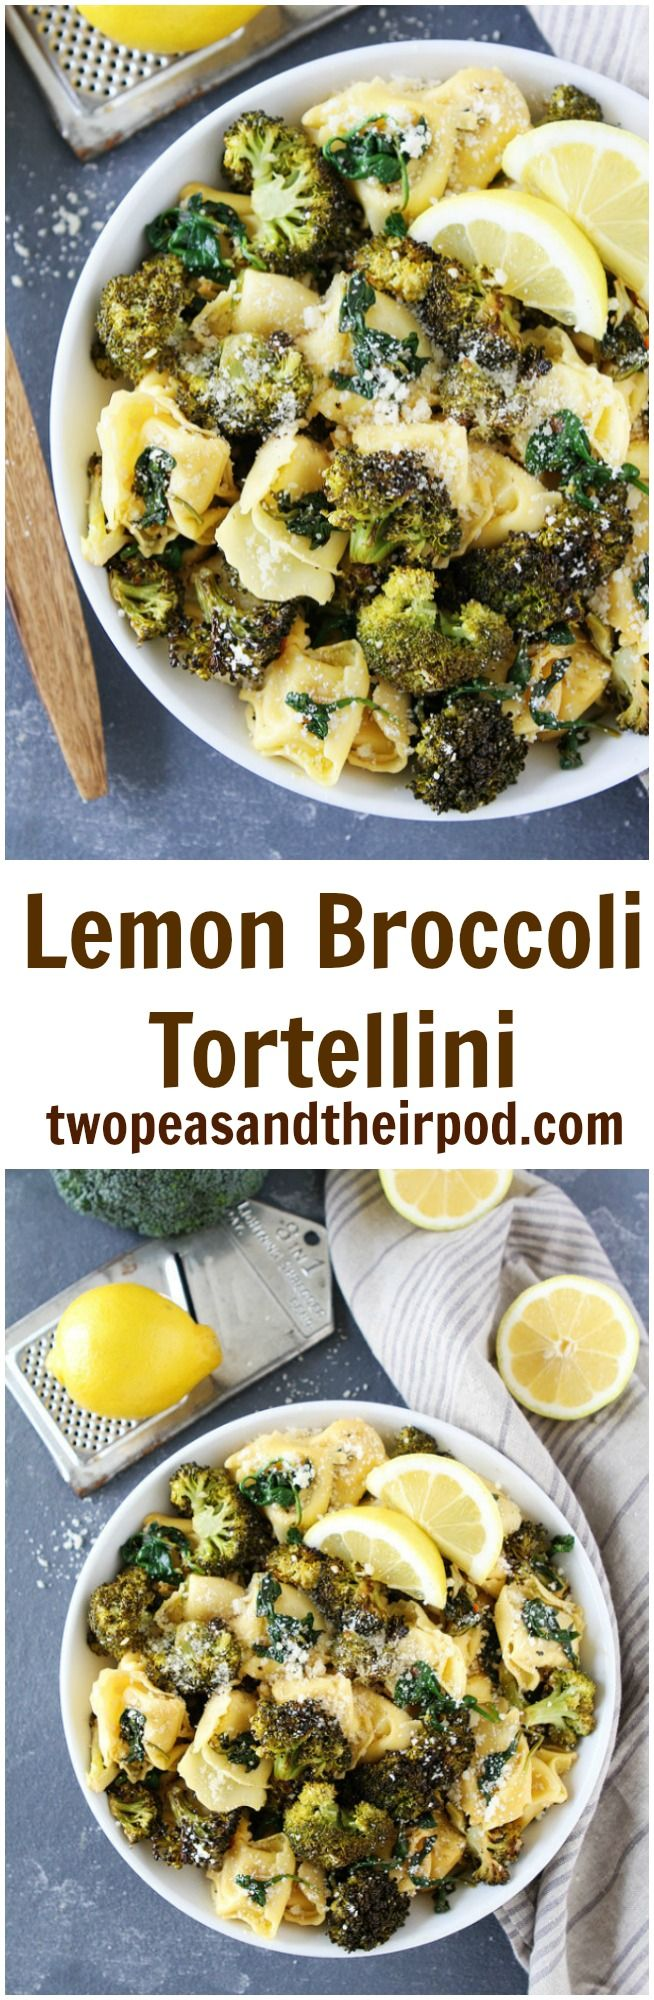 Lemon Broccoli Tortellini Recipe on twopeasandtheirpod.com This easy tortellini pasta dish is bursting with flavor! It is favorite weeknight dinner!